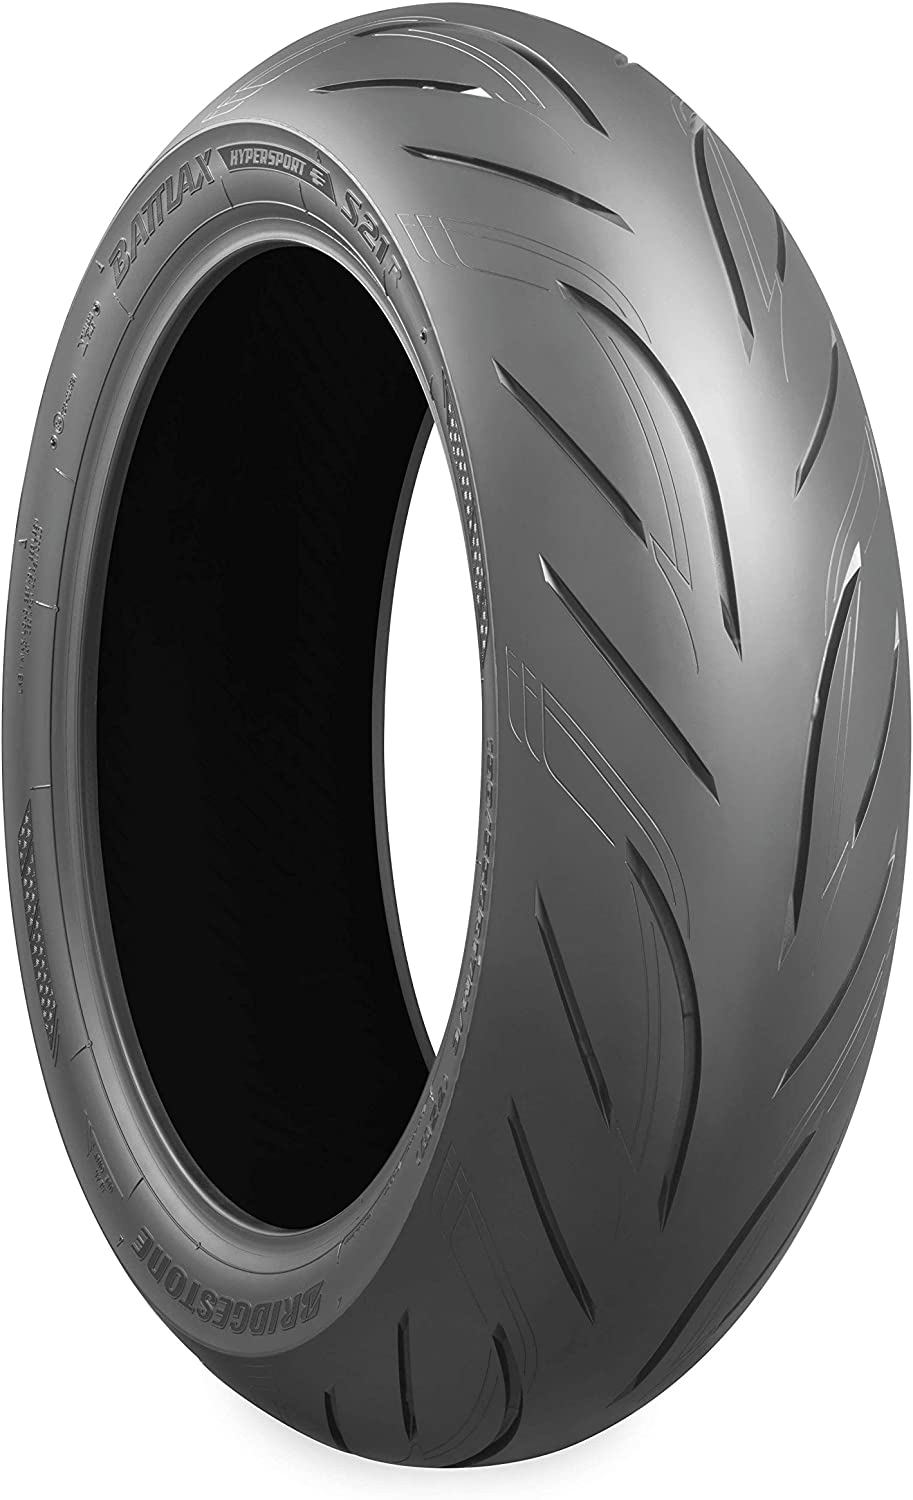 Bridgestone Battlax Hypersport S-21 Rear Motorcycle Tires - 190/55ZR-17 5487